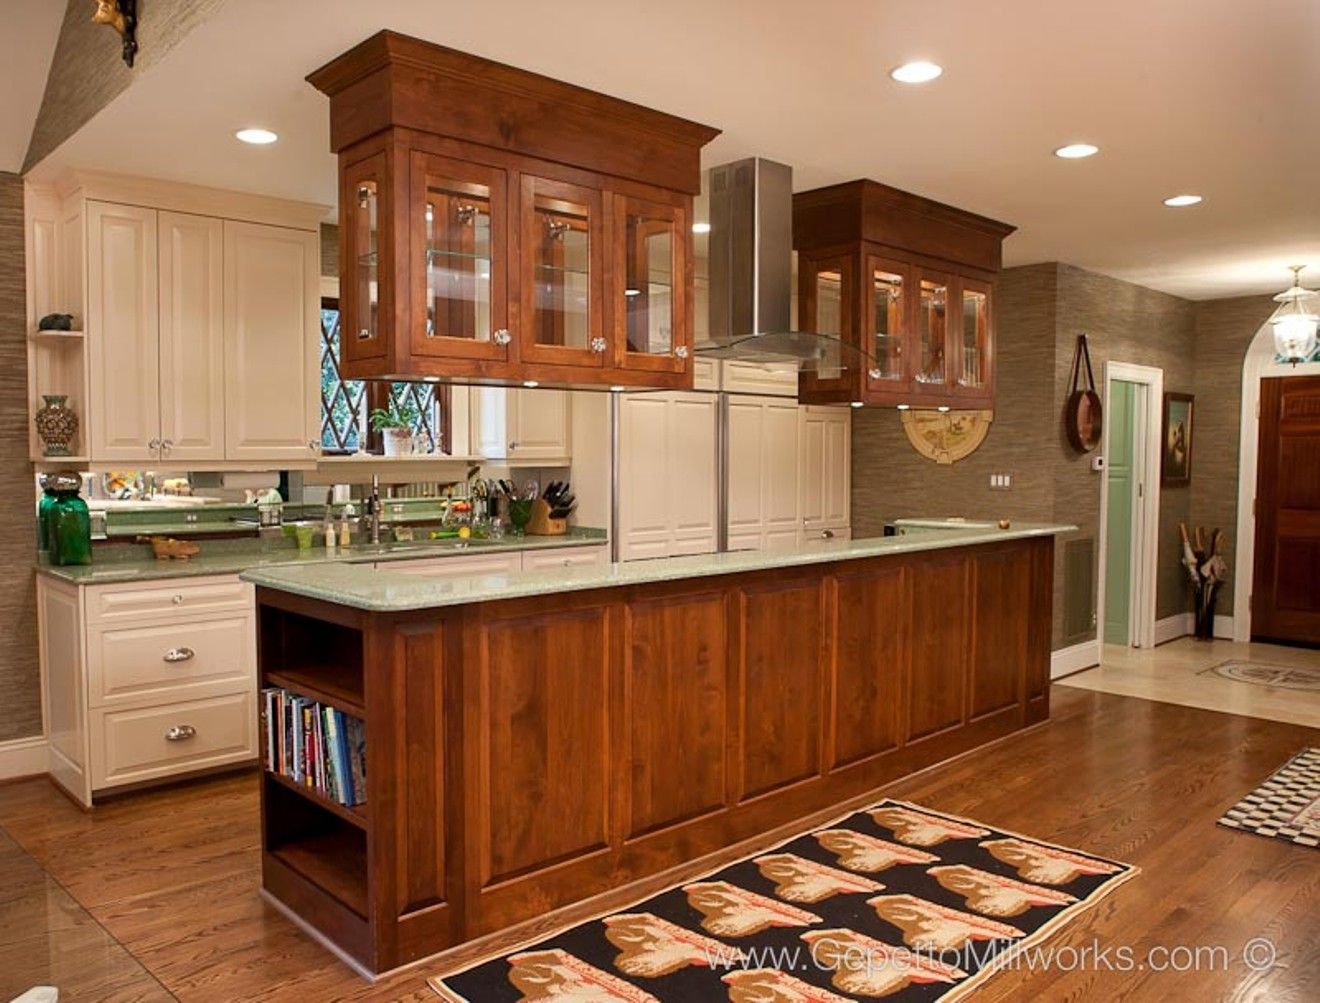 Kitchen Cabinets To Ceiling With Glass Hanging Beds From Ceiling Decosee From Kitchen Hanging